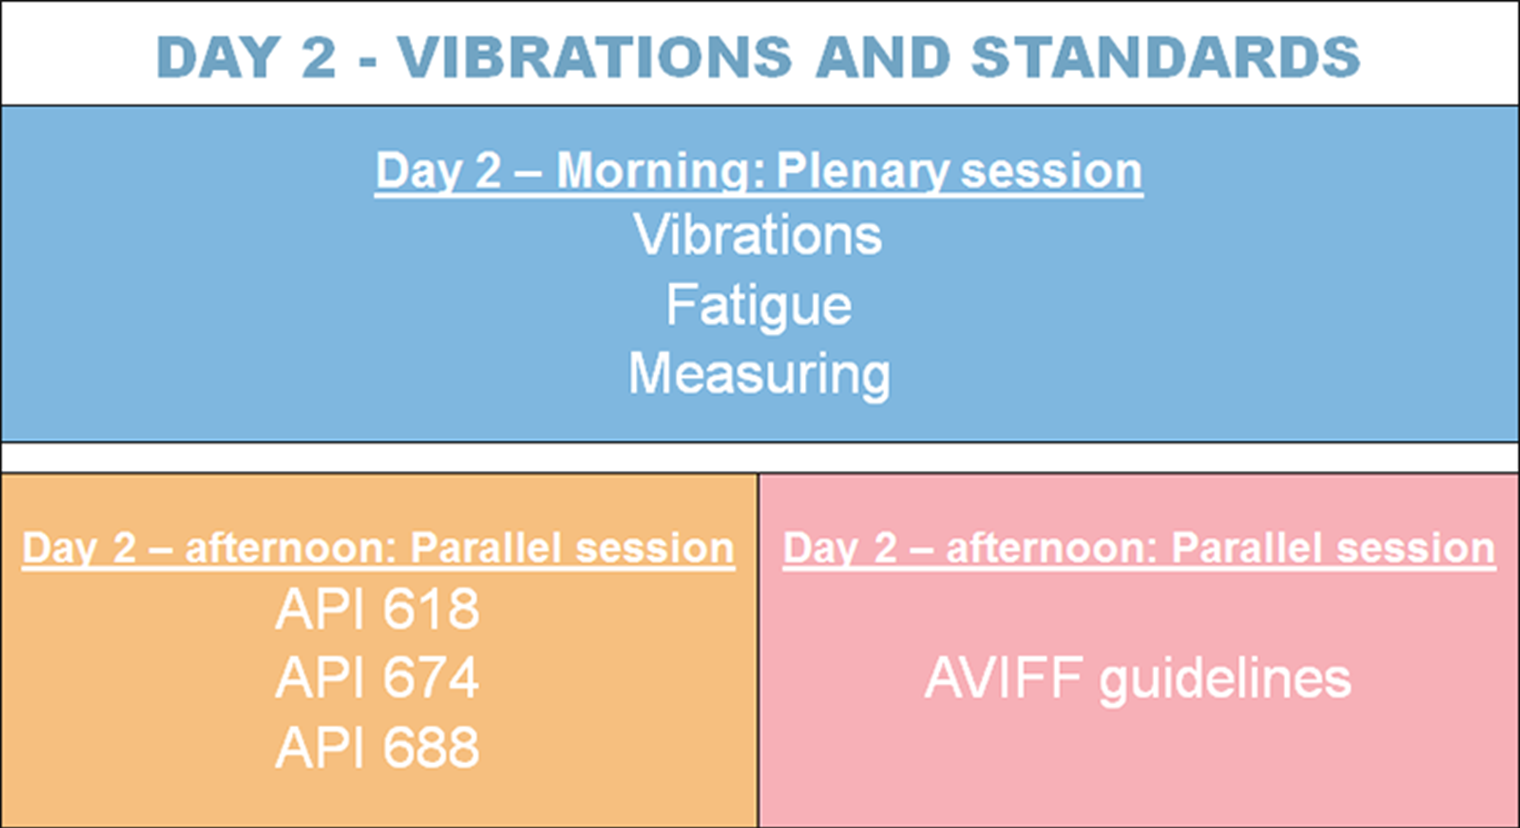 Course On The Essentials Of Pulsation And Vibration Control Pvc In Expertise Presenting High Quality Electrical Pipes These Again Morning Is Plenary Discussing Vibrations Pipe Systems How This Translates Into Fatigue Failure Also Performing Good